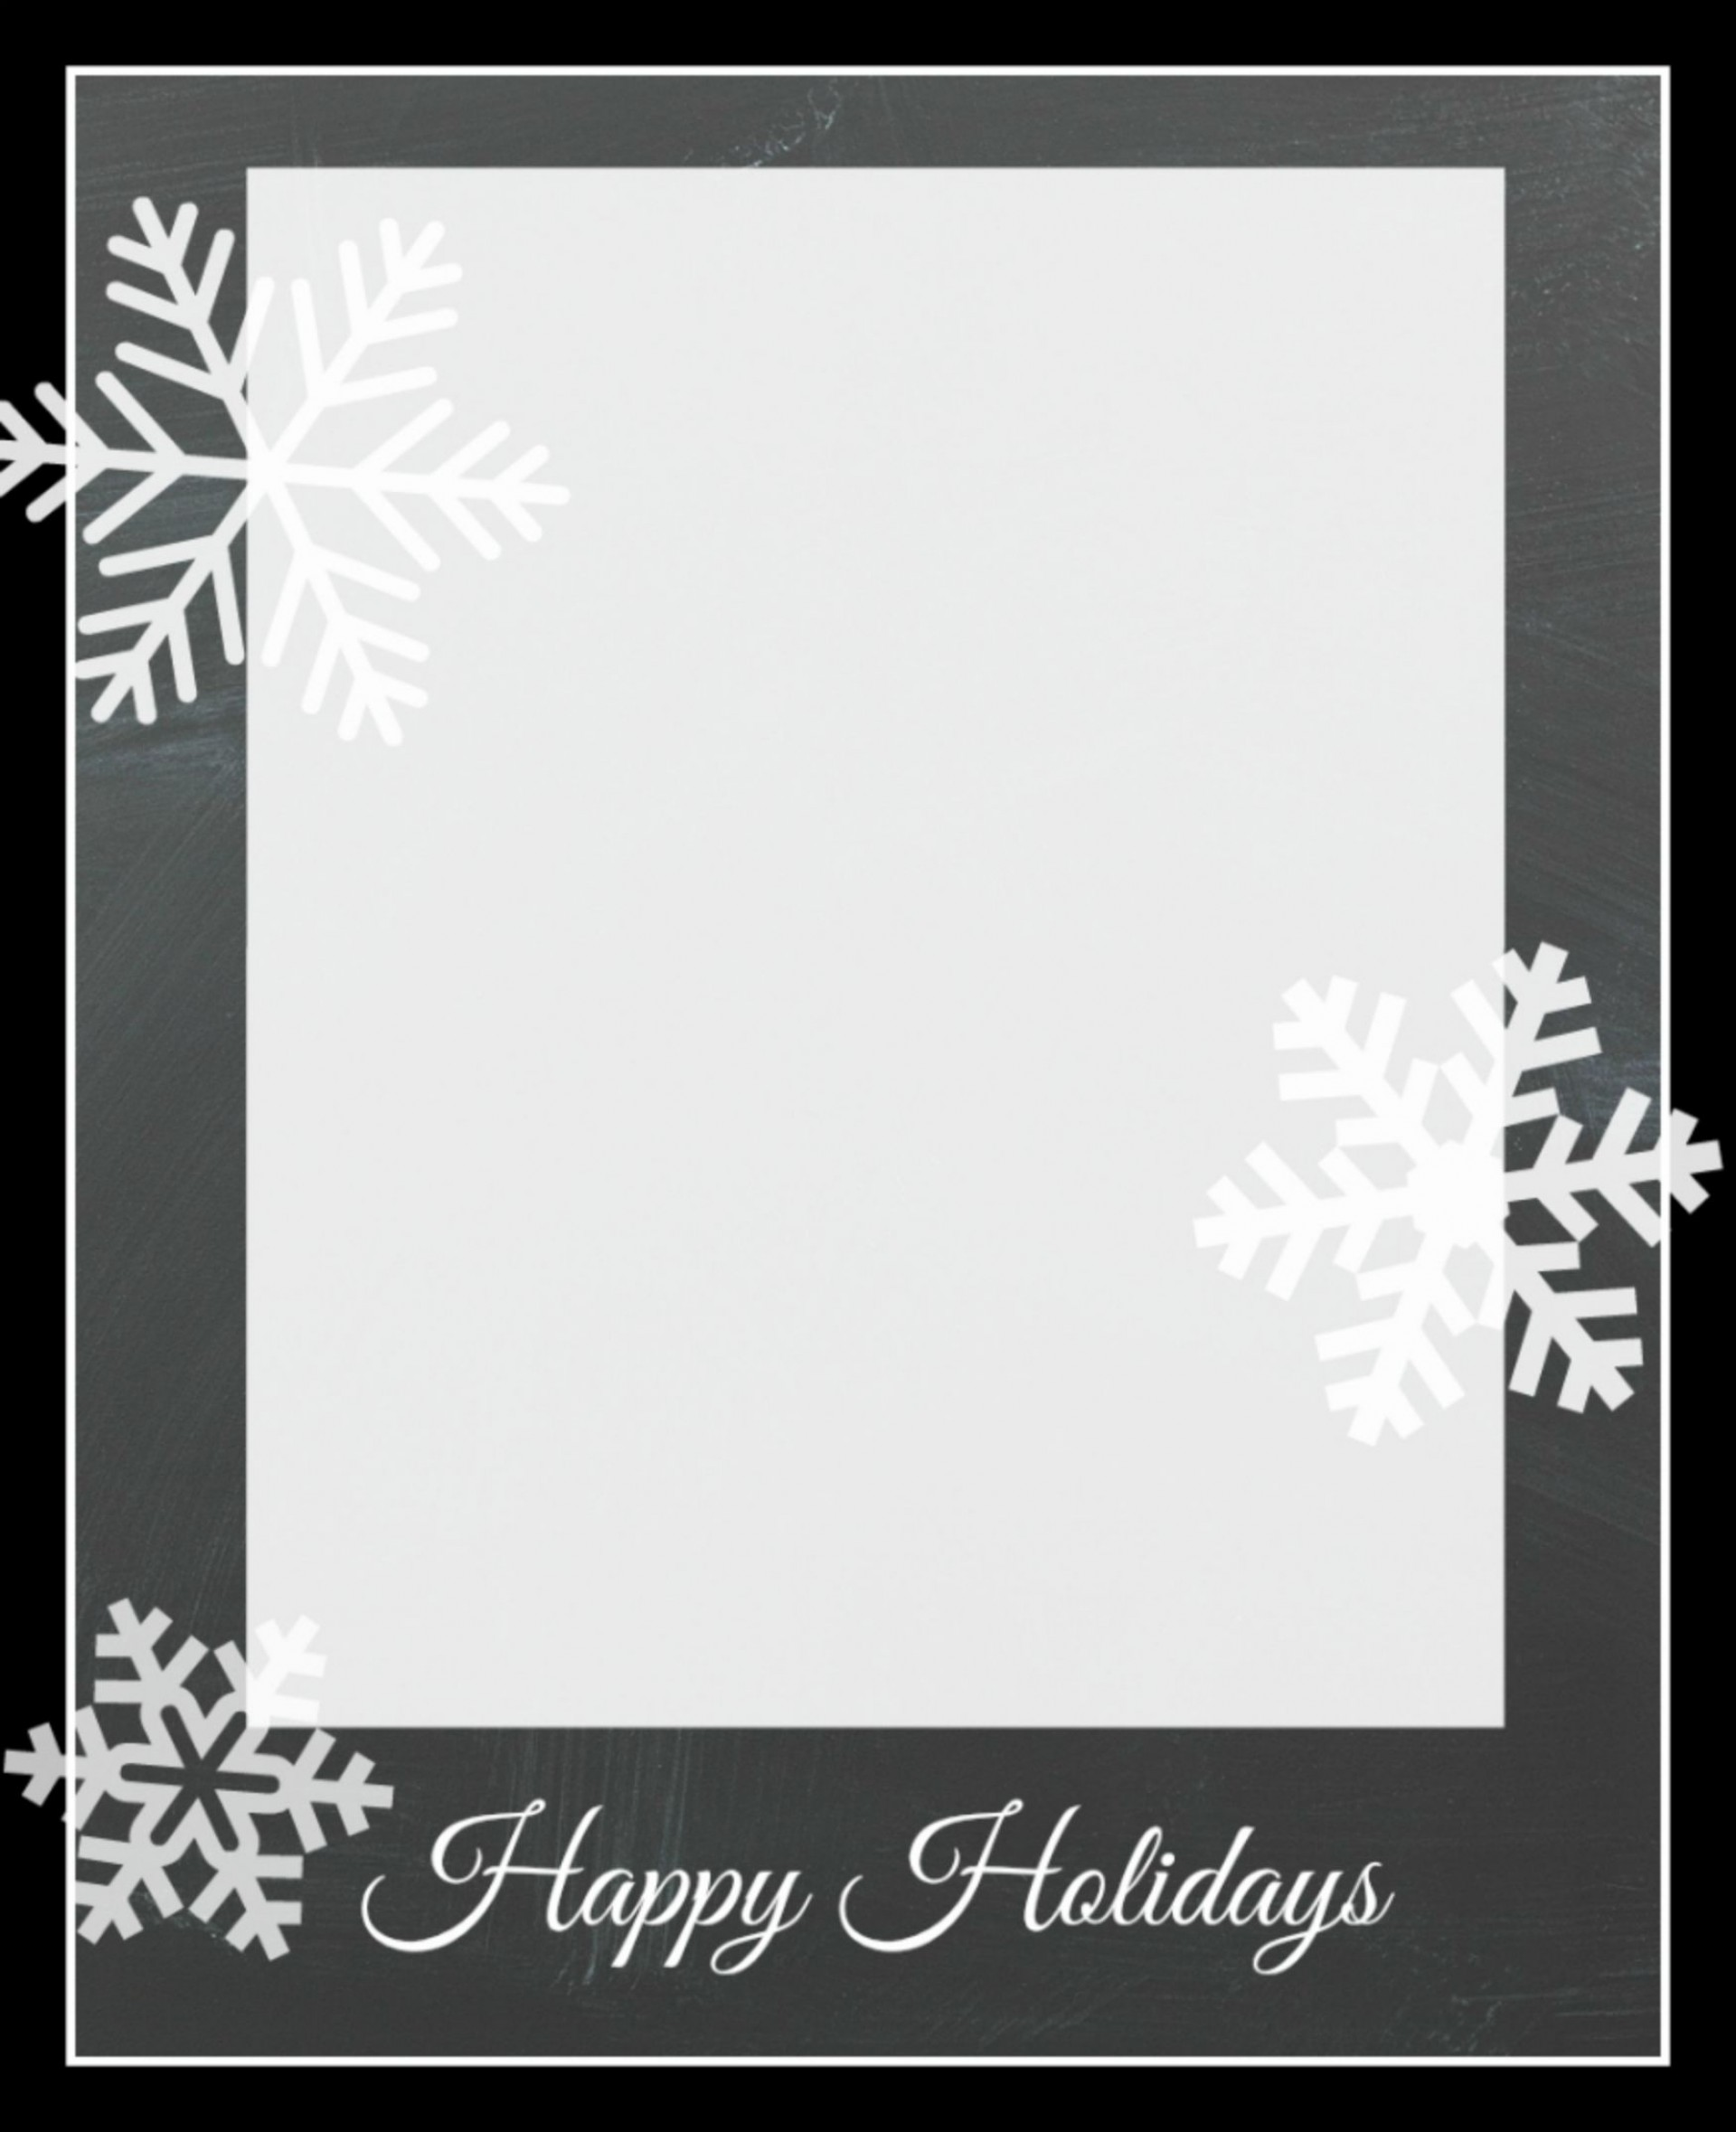 009 Unforgettable Free Download Holiday Card Template Photo 1920